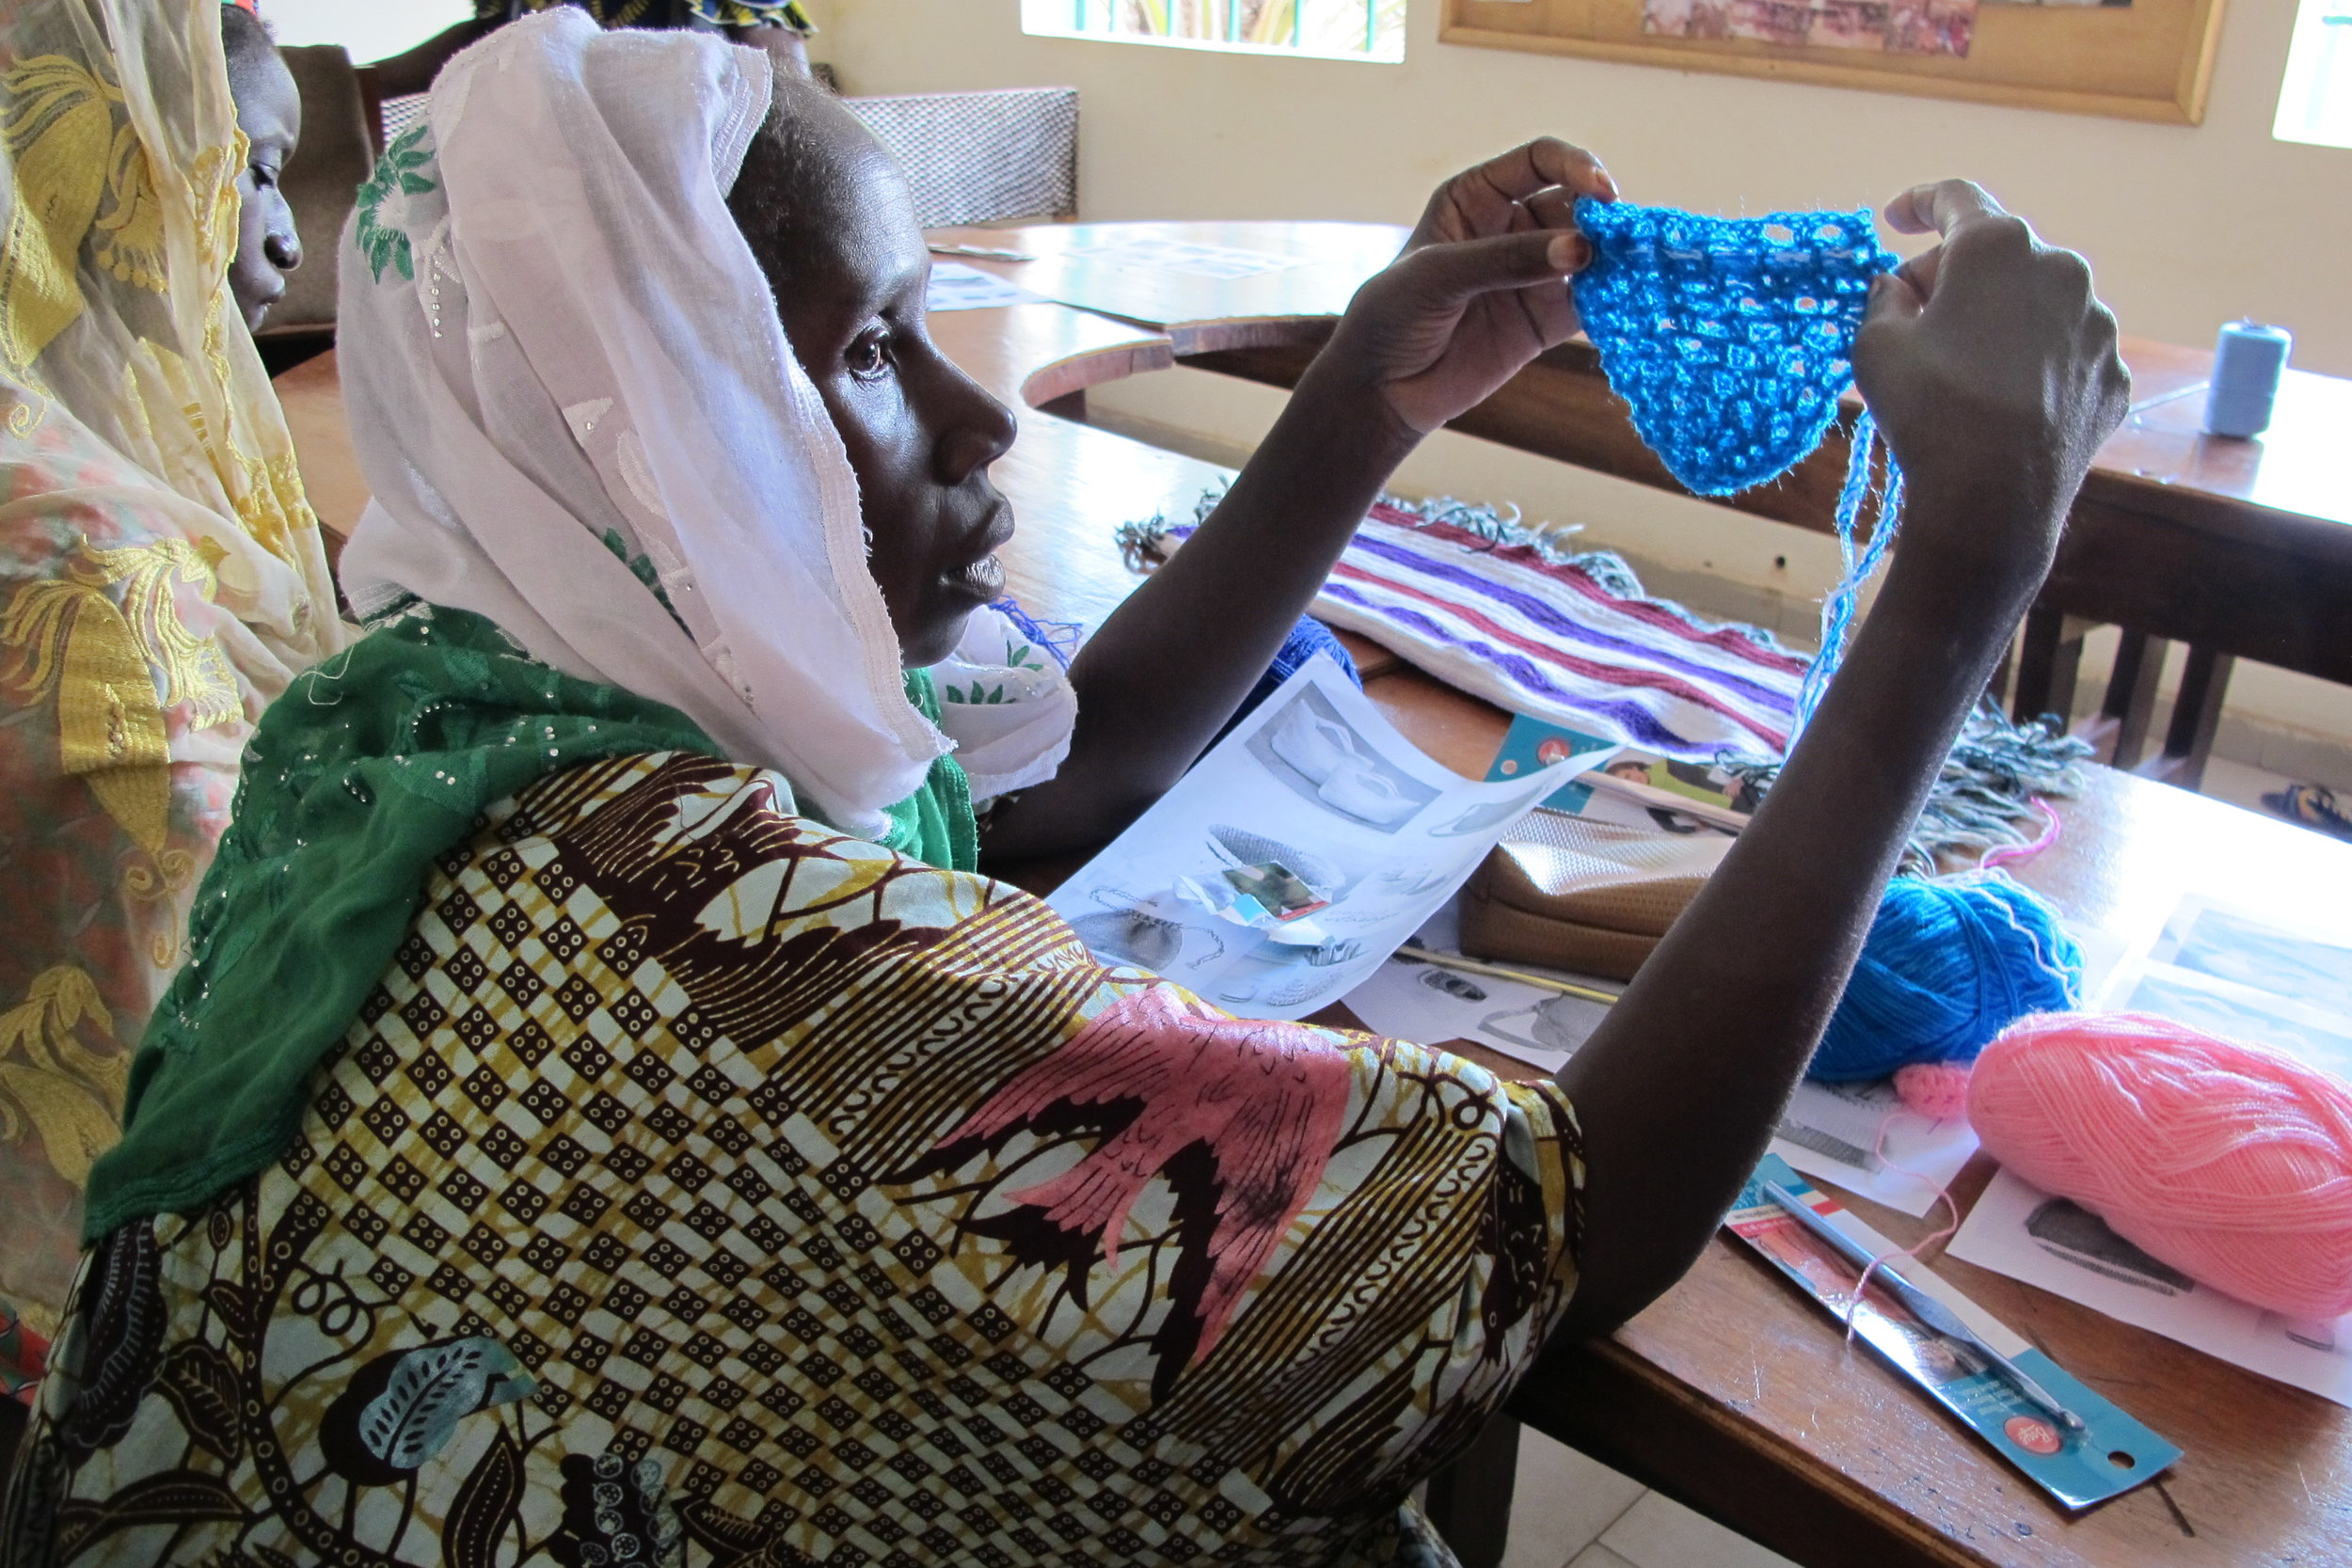 Crochet workshop in Sikoro, Bamako, Mali.